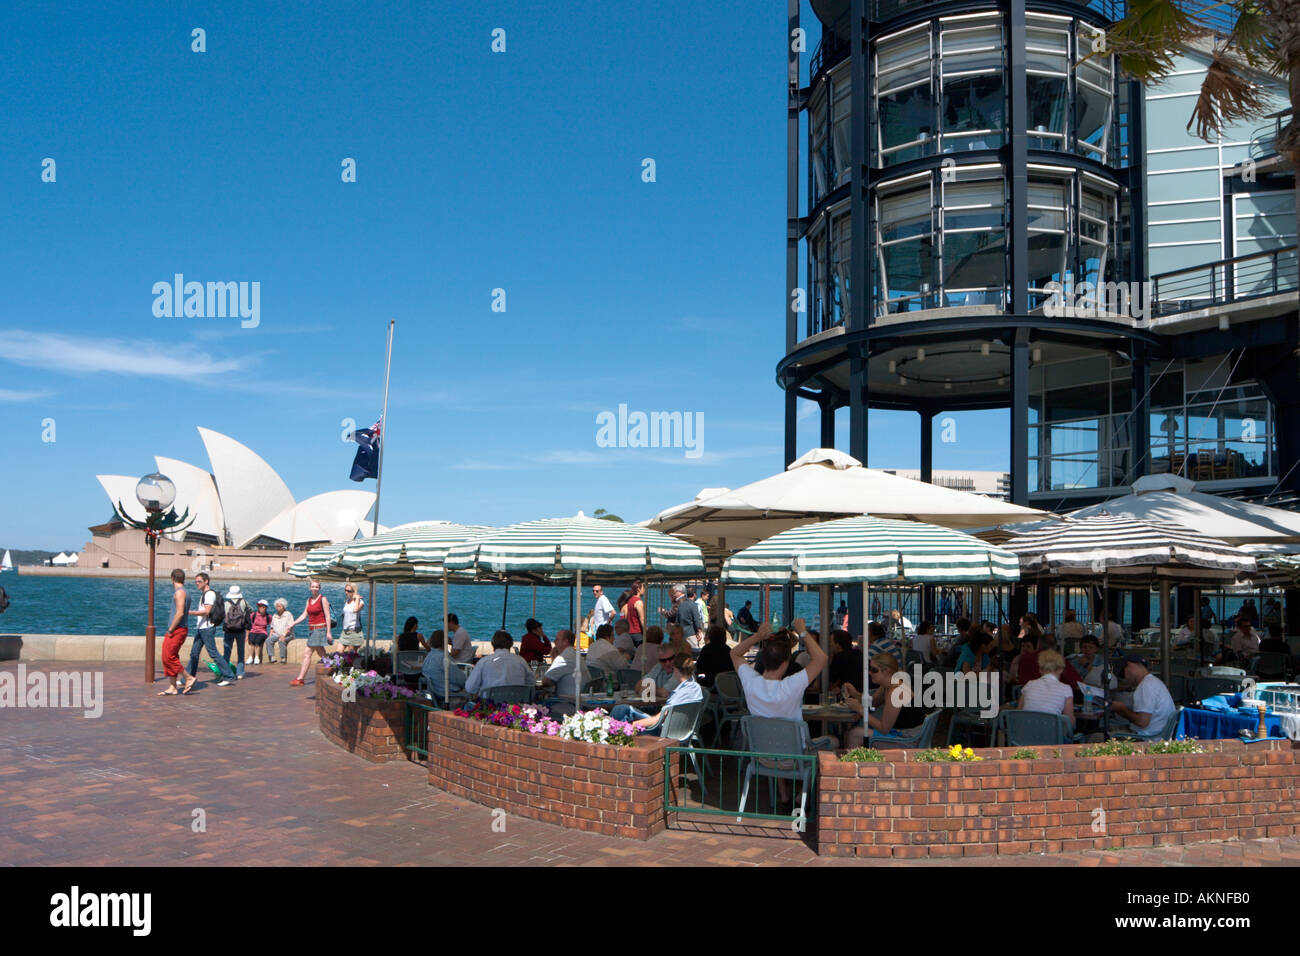 Pavement cafe in Circular Quay with the Opera House behind, Sydney, New South Wales, Australia - Stock Image